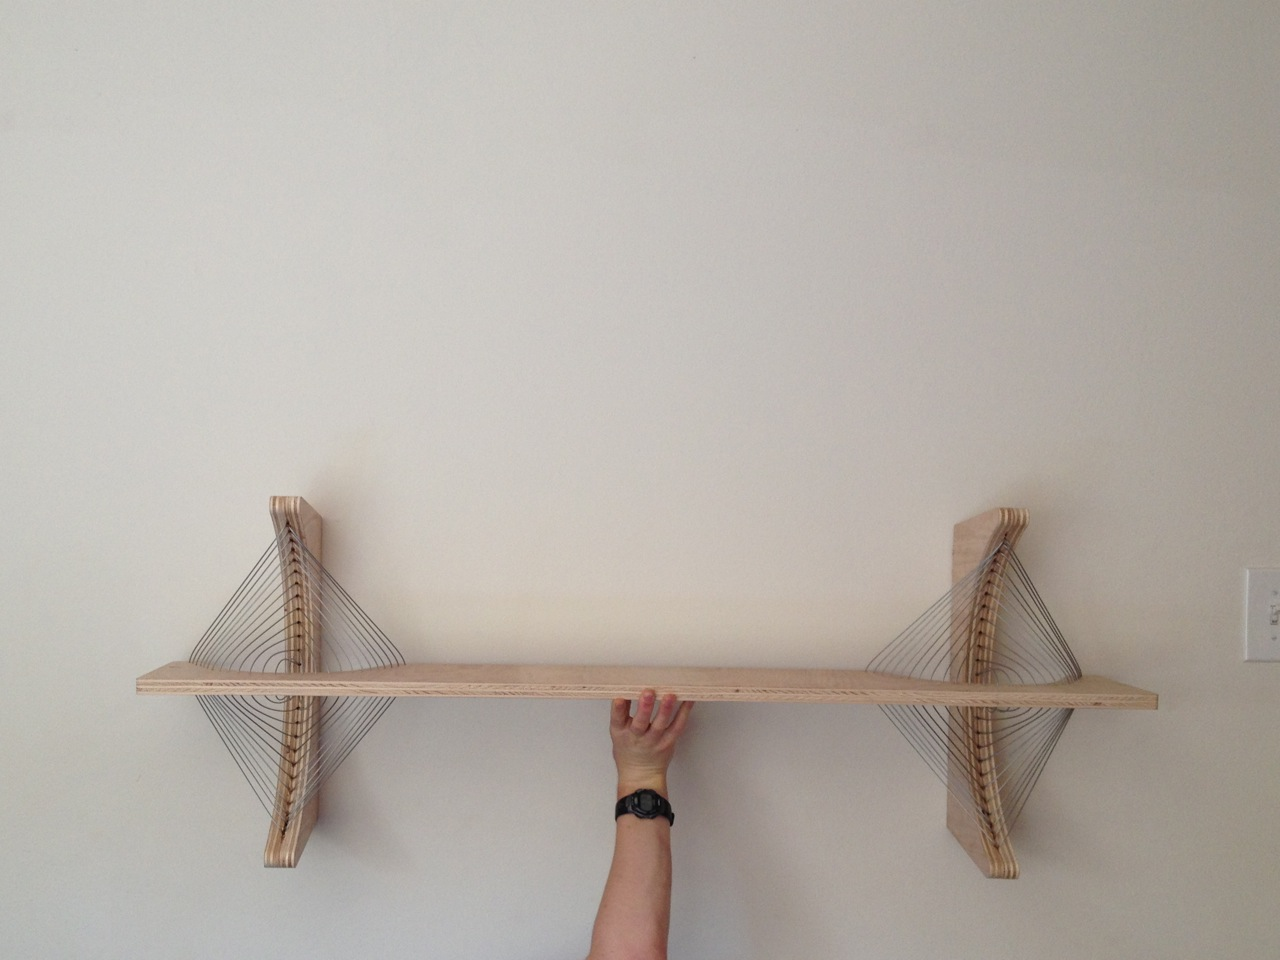 Floating shelf prototype